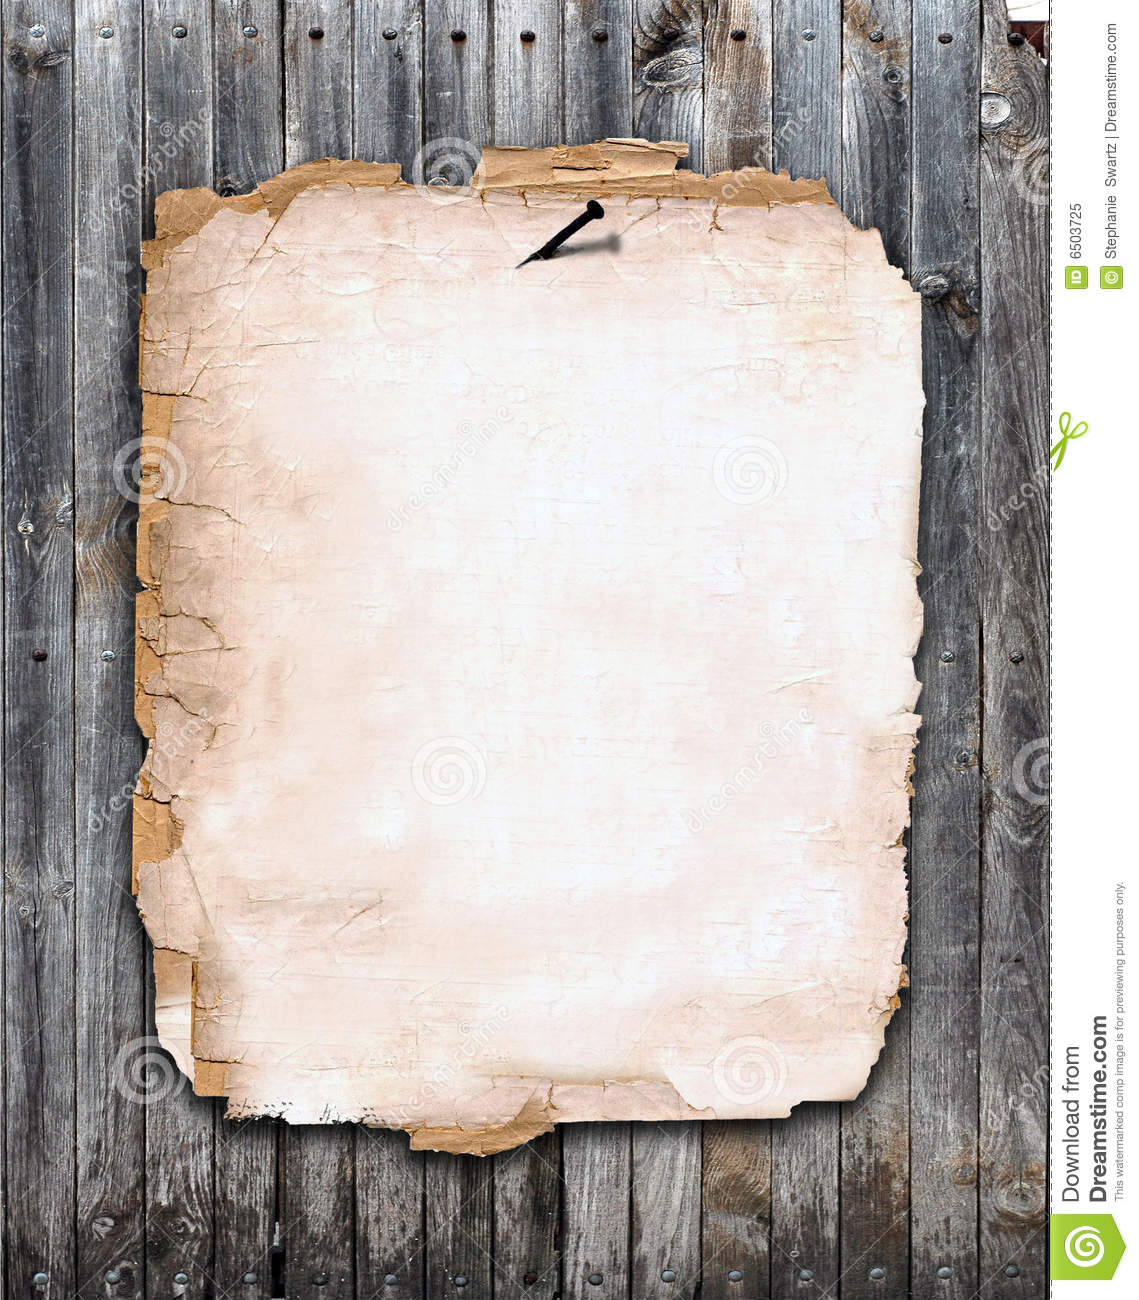 Old Paper Nailed To A Wood Fence Stock Illustration